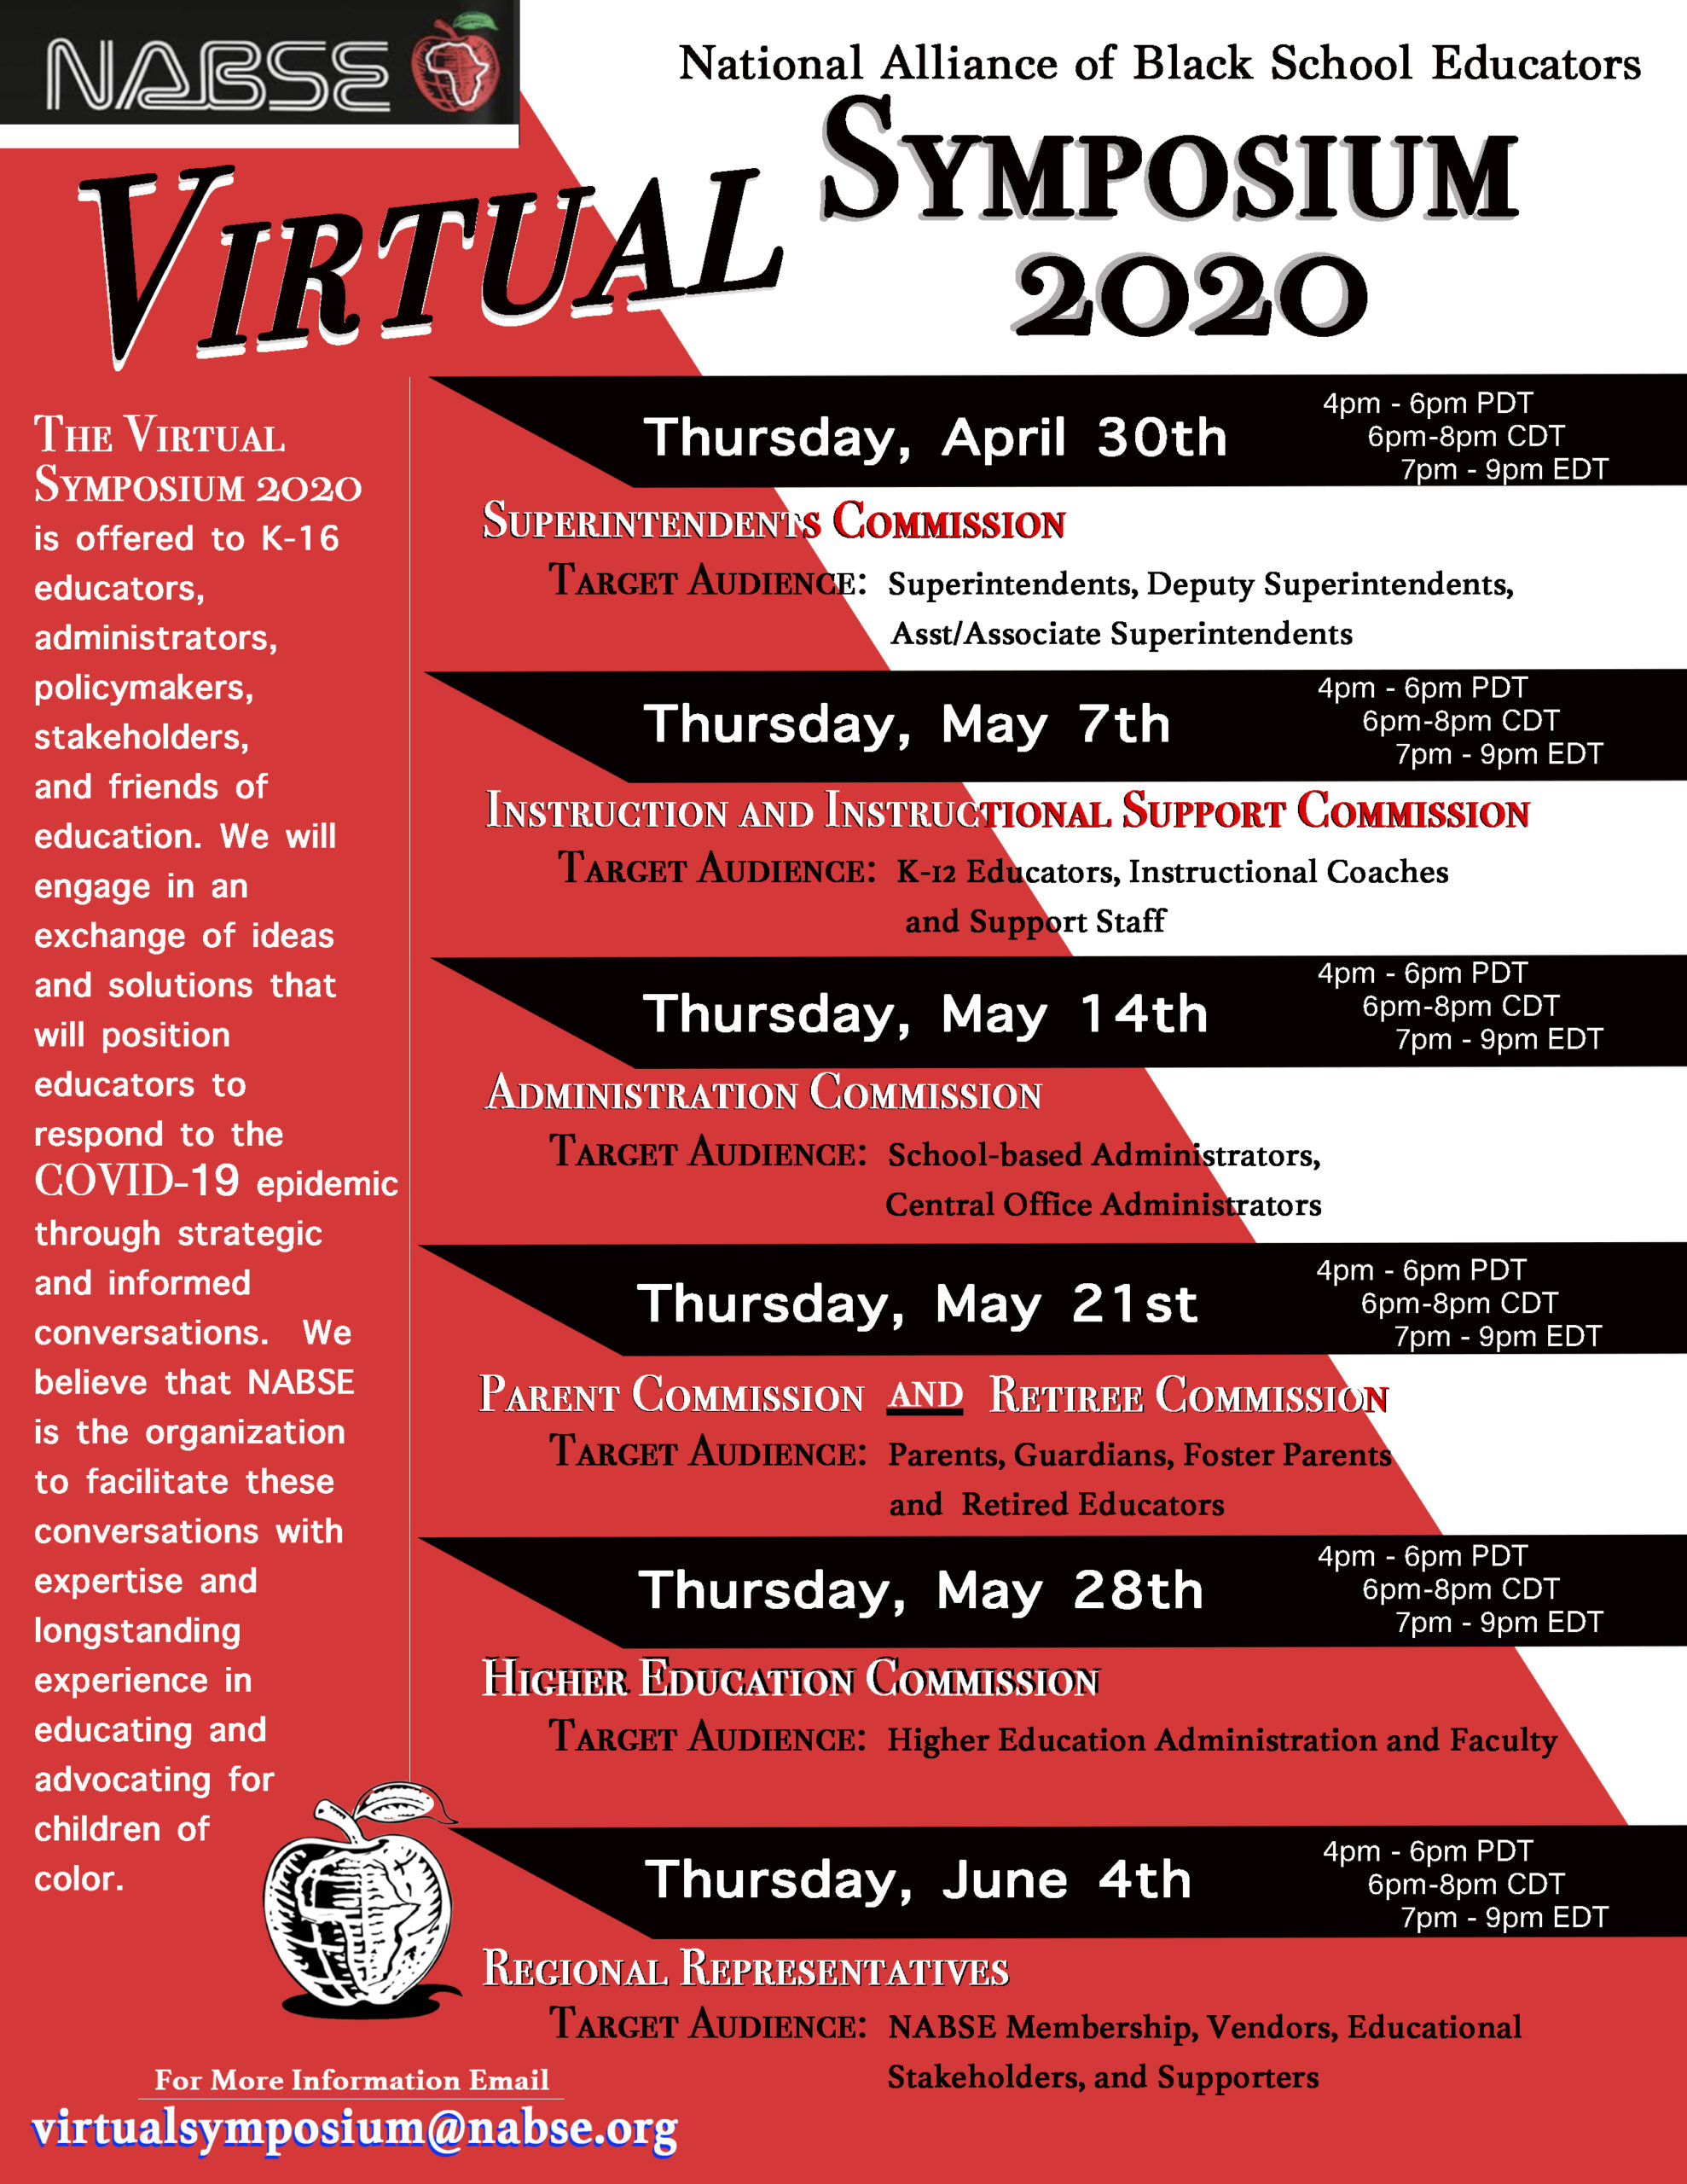 NABSE Virtual Symposium 2020 v2 no link